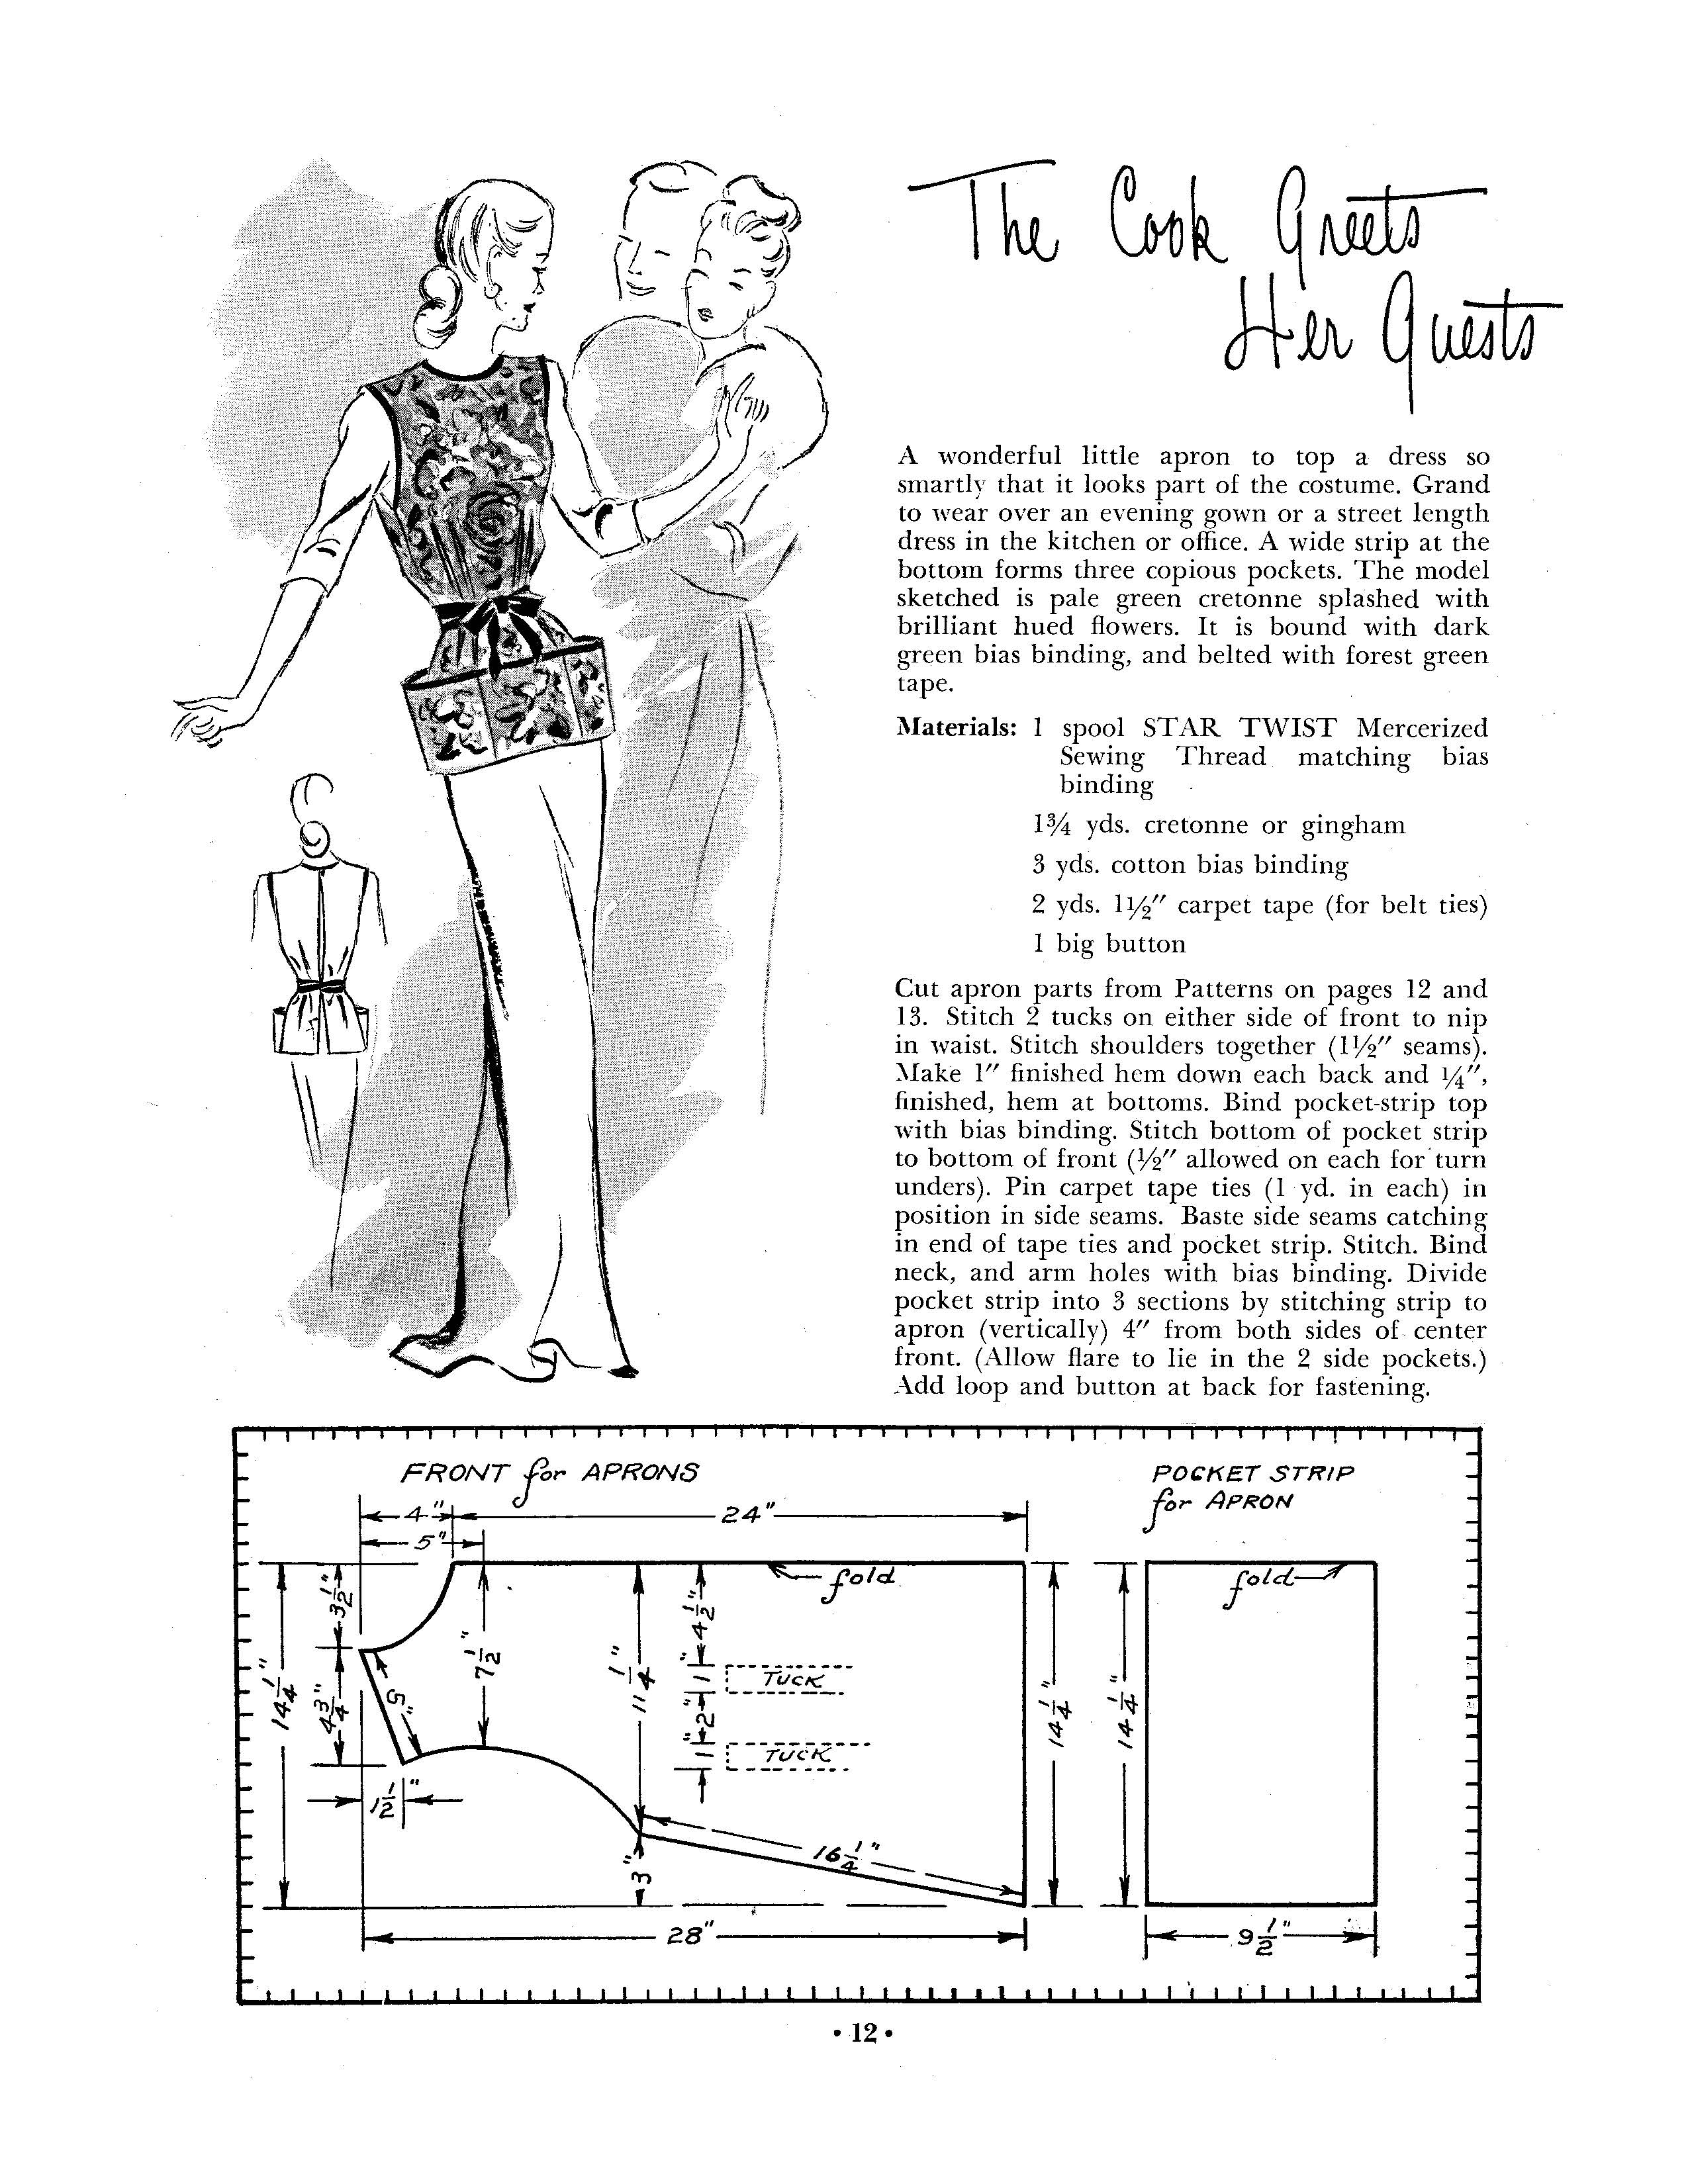 http://qisforquilter.com/wp-content/uploads/2013/03/Aprons-and-Bibs_Page_12.jpg